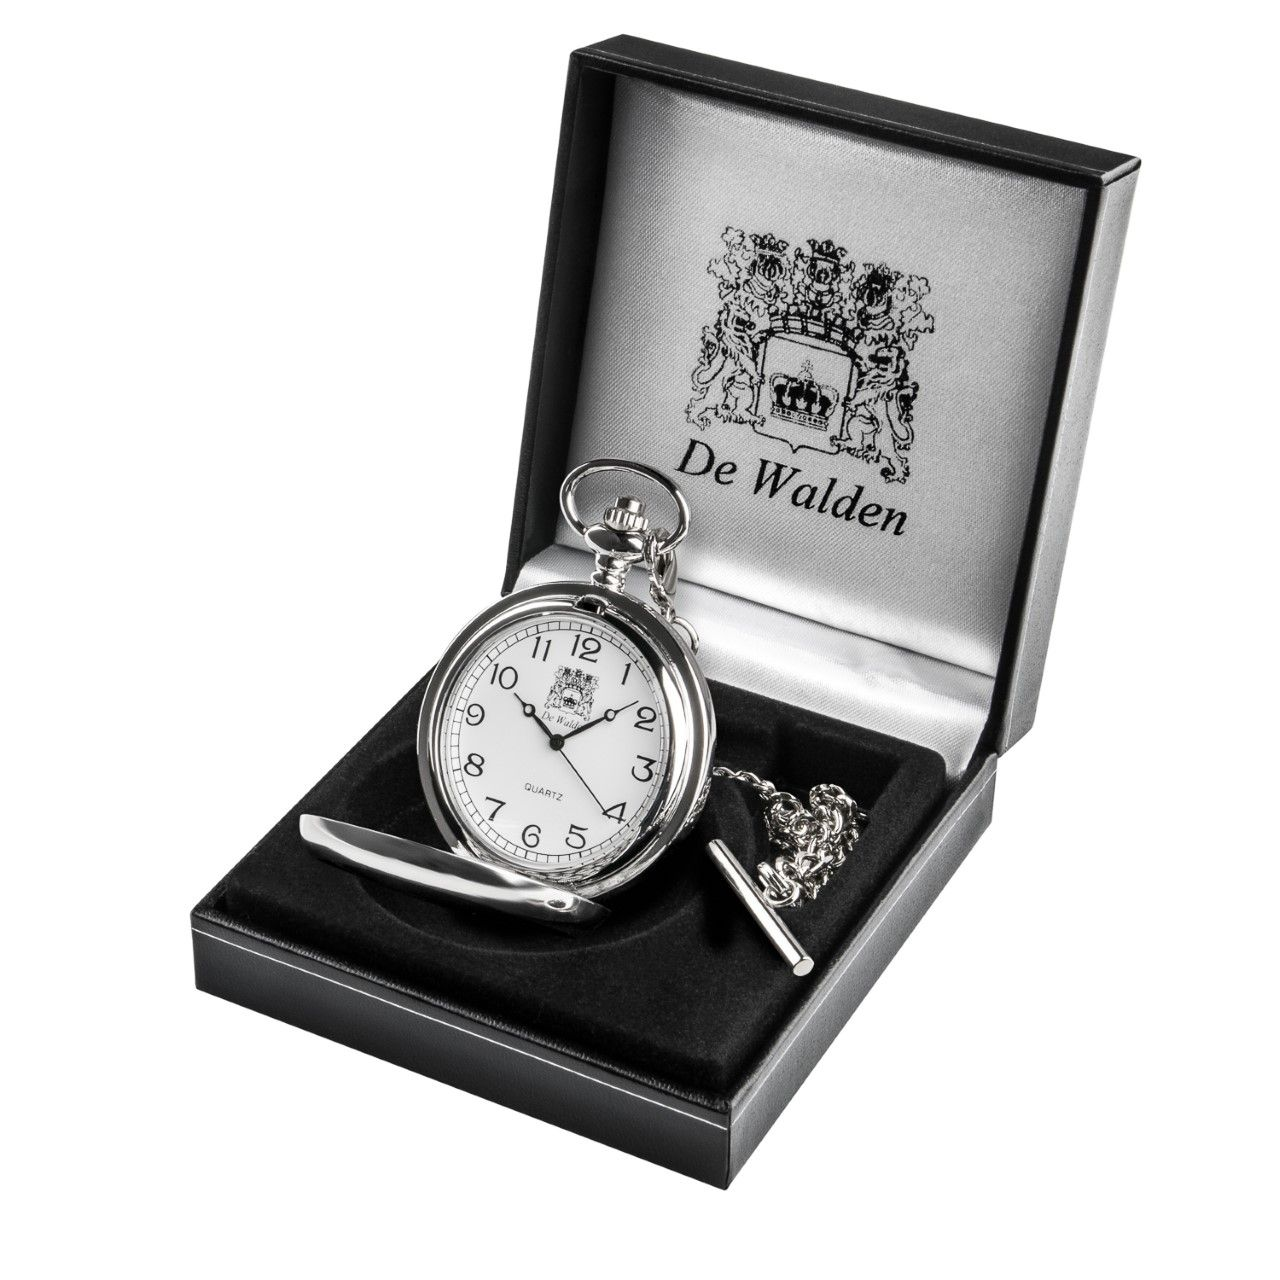 Boy's First Holy Communion Gift - Personalised Engraved Pocket Watch in a Quality Gift Box.